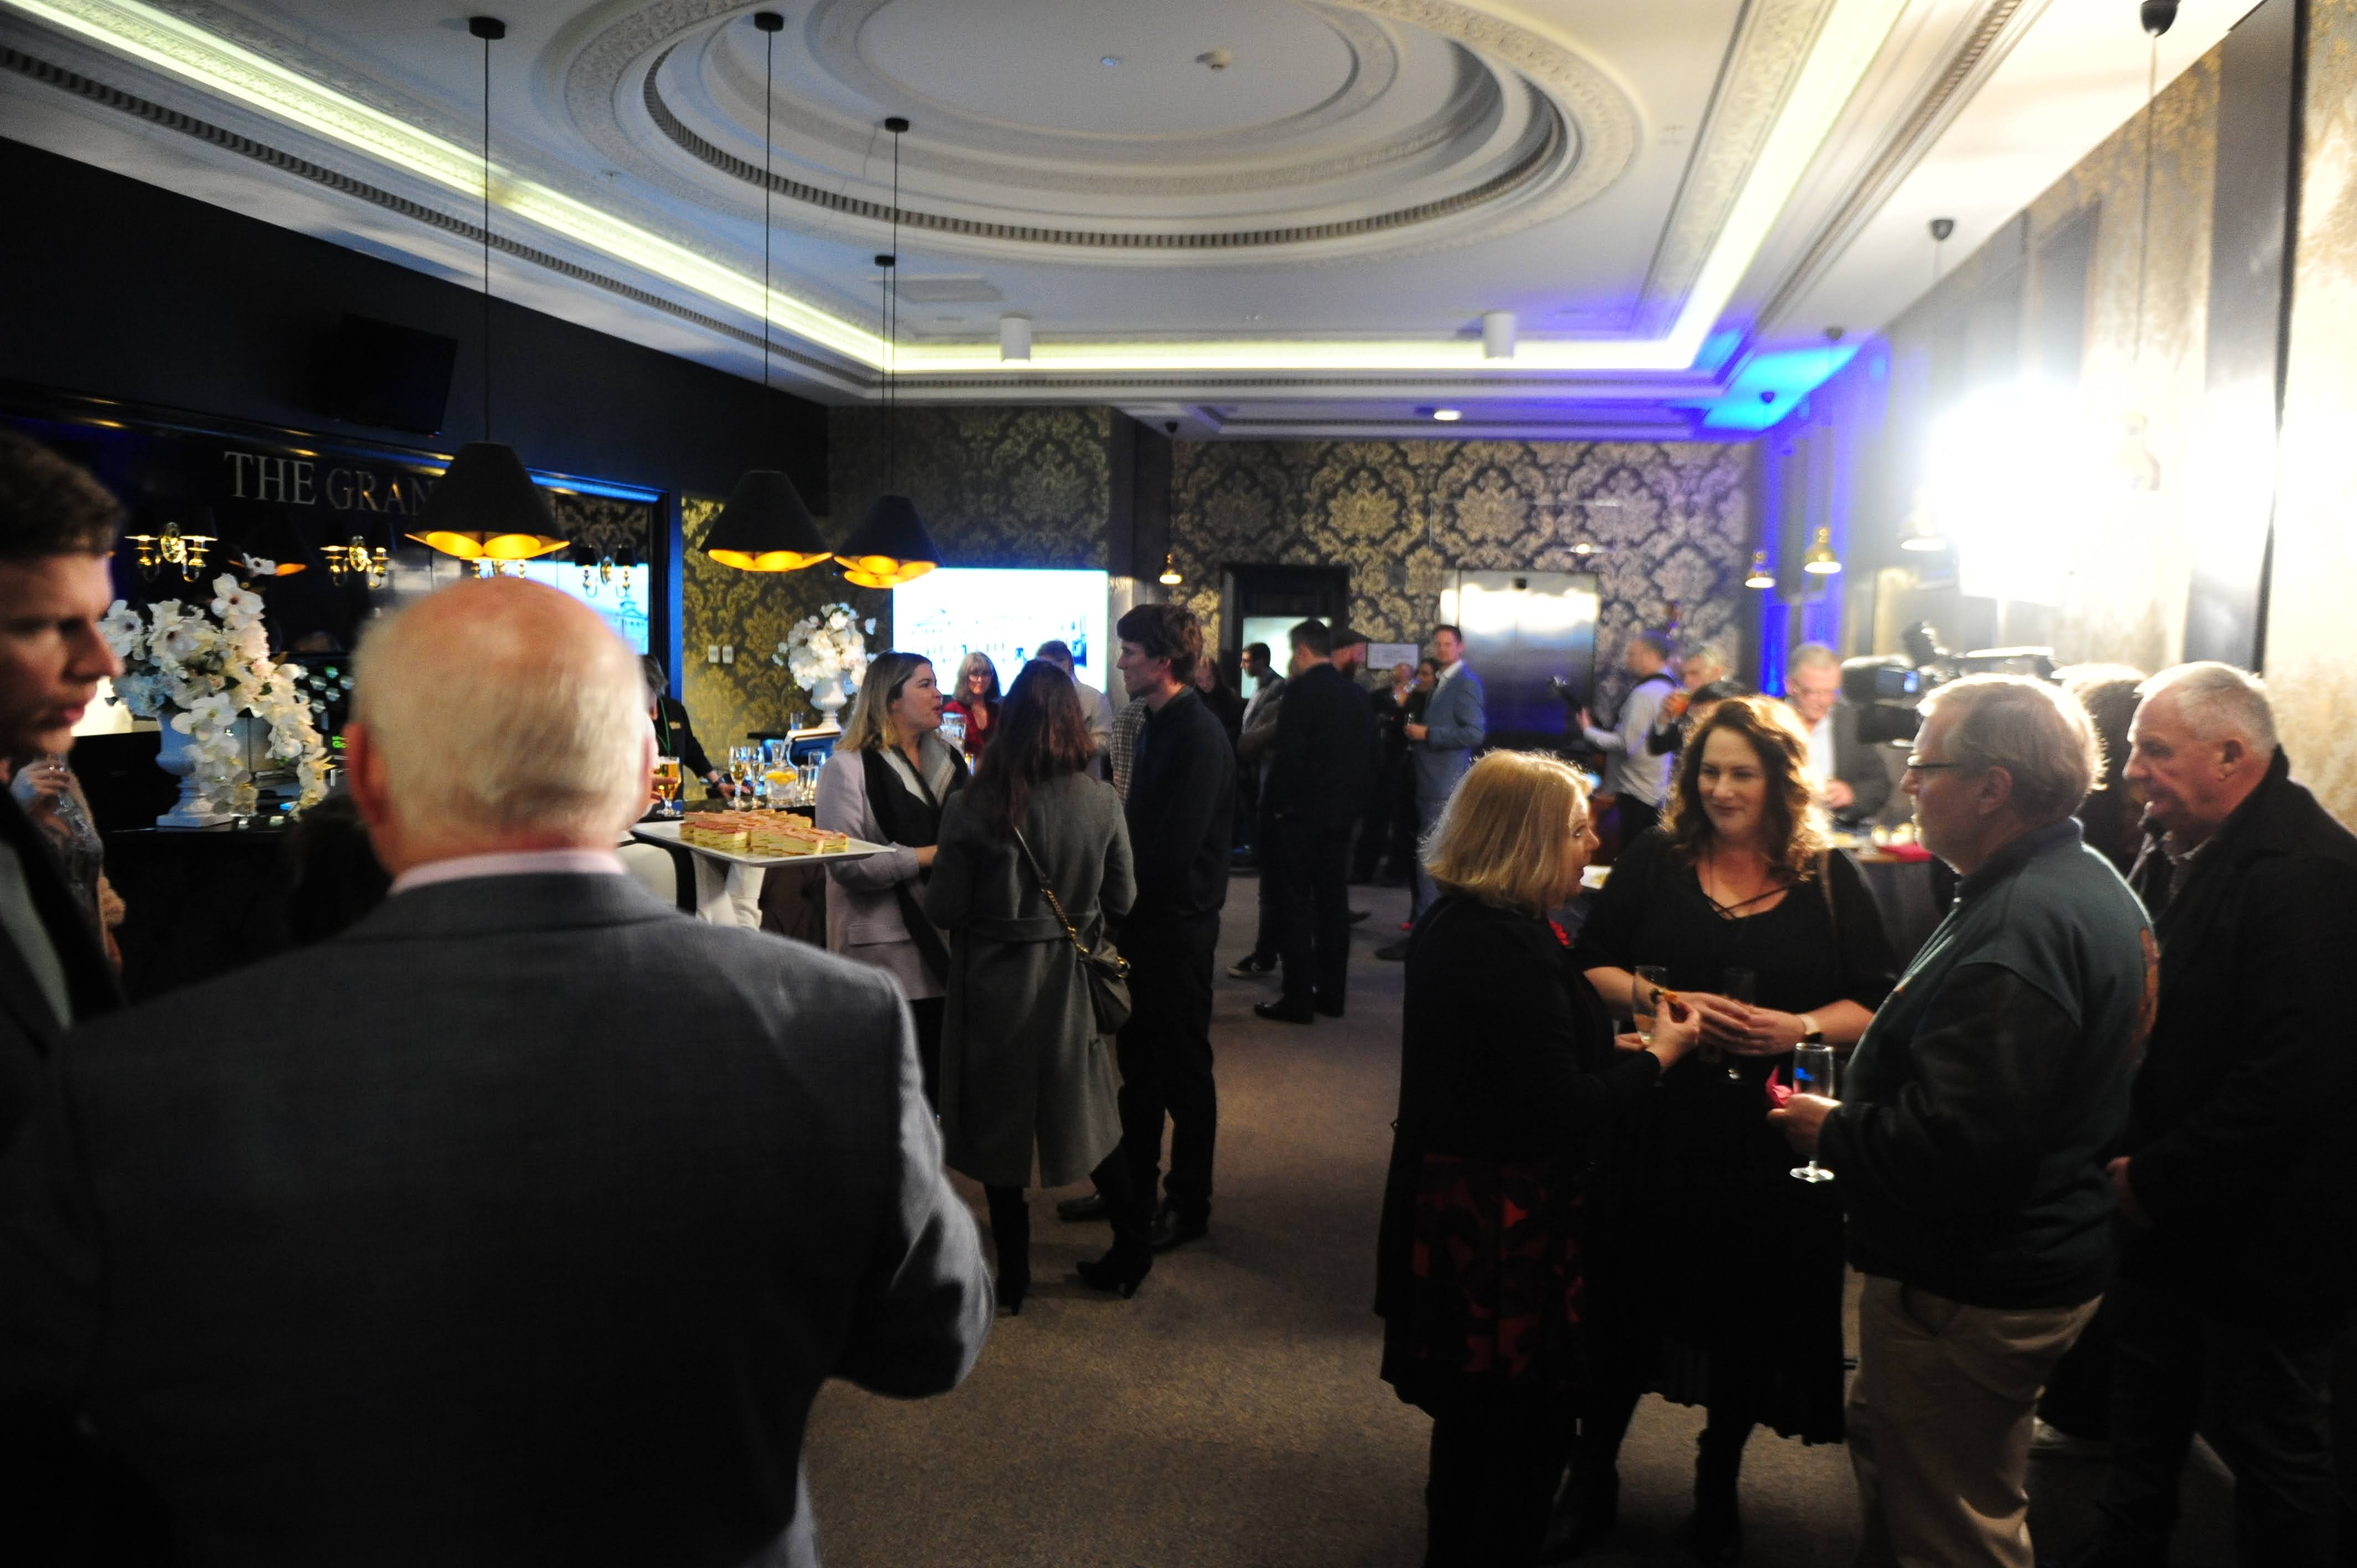 Guests mingle before the Lunch Event begins